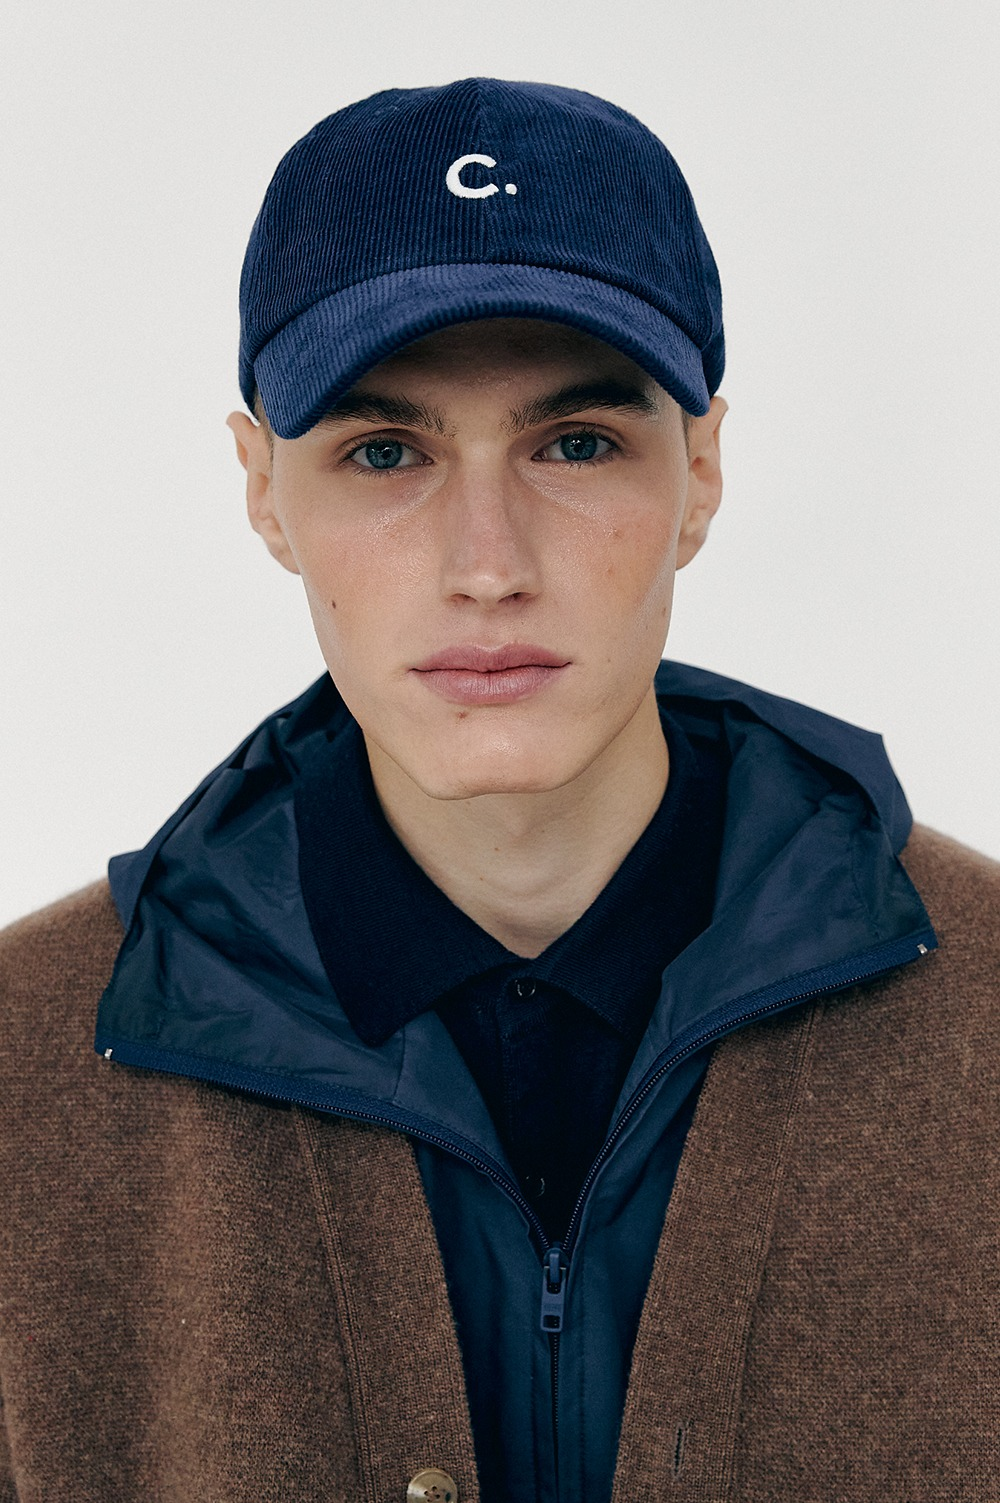 [FW20 CLOVE] Corduroy New Fit Ball Cap (Navy)